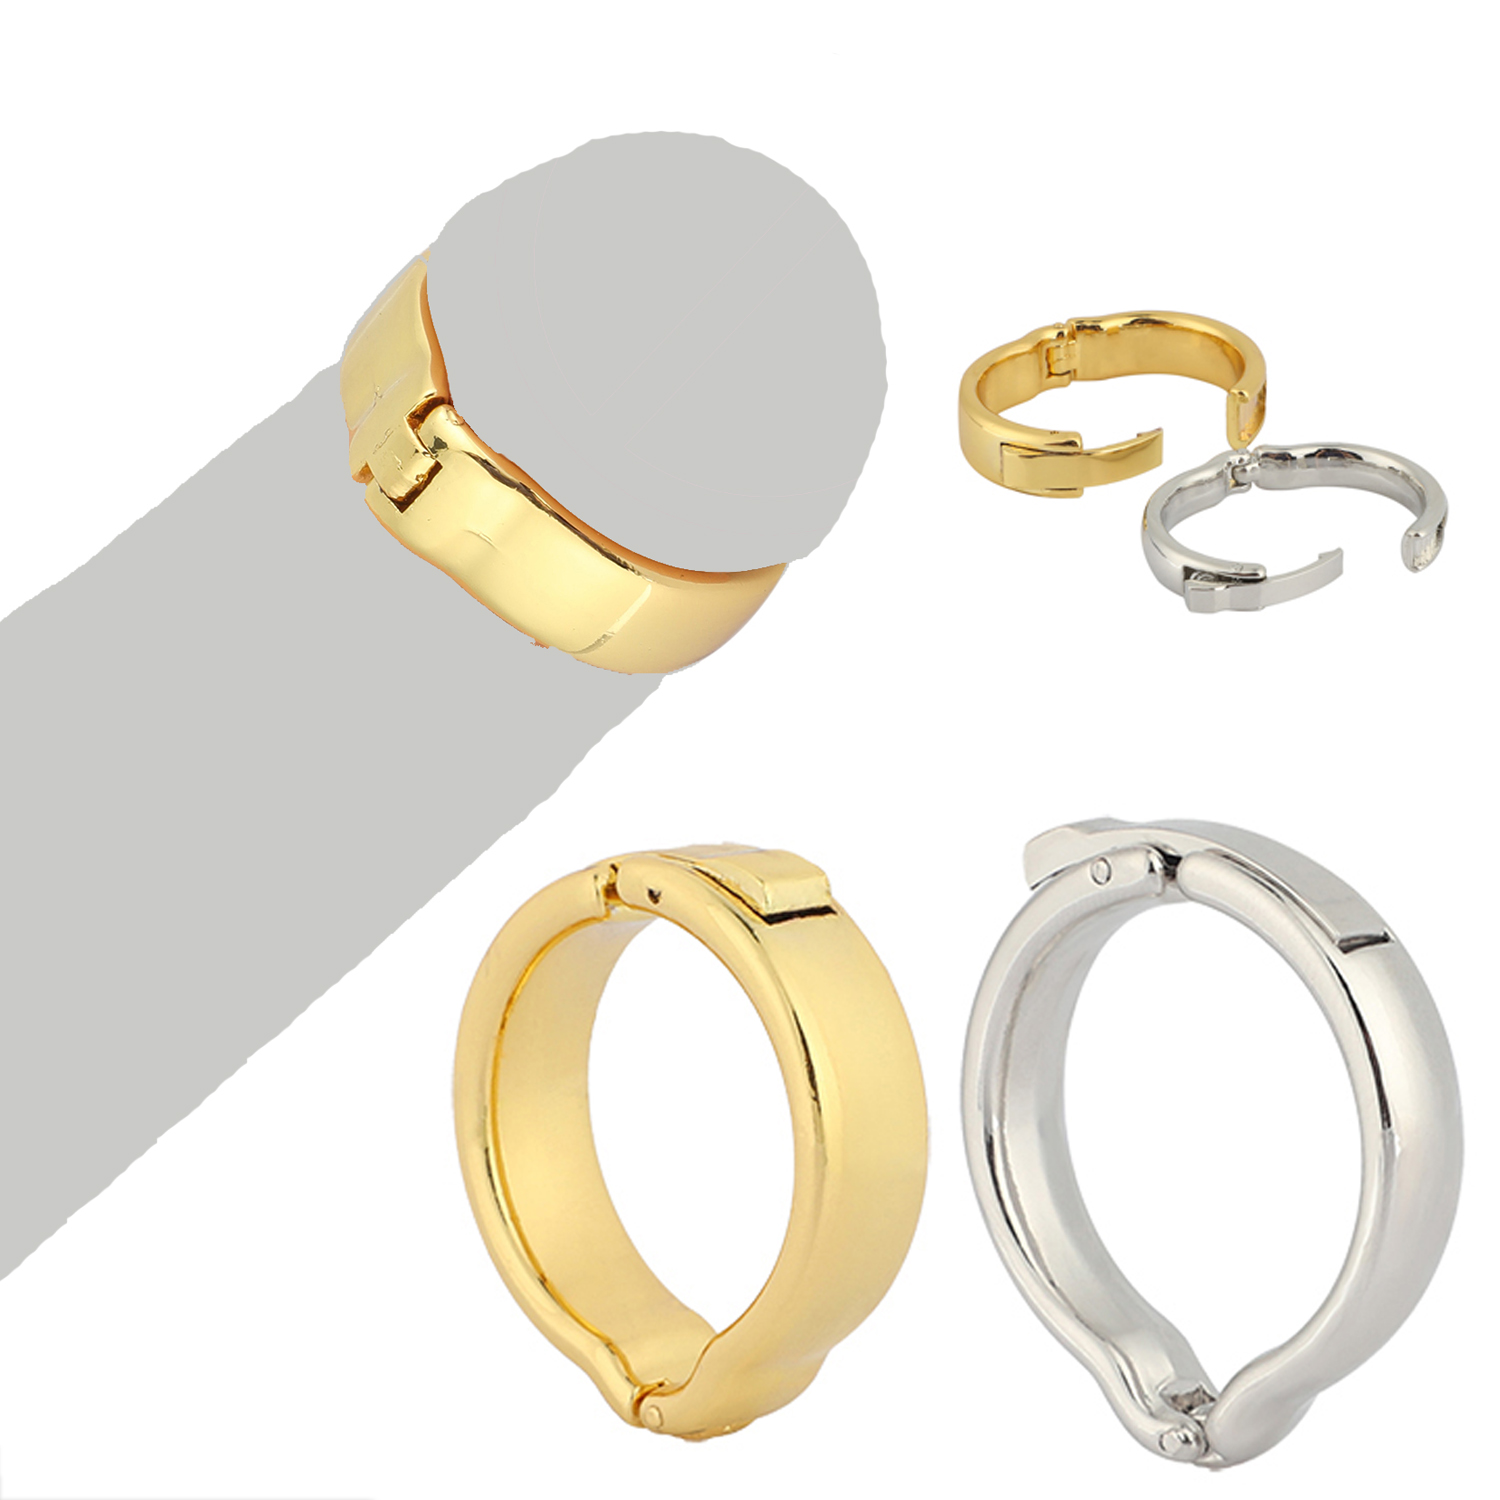 Metal Foreskin Correction Penis Ring, Adjustable Size Glans Physiotherapy Ring, <font><b>Male</b></font> <font><b>Circumcision</b></font> Ring V Type Cock Ring Sex Toys image